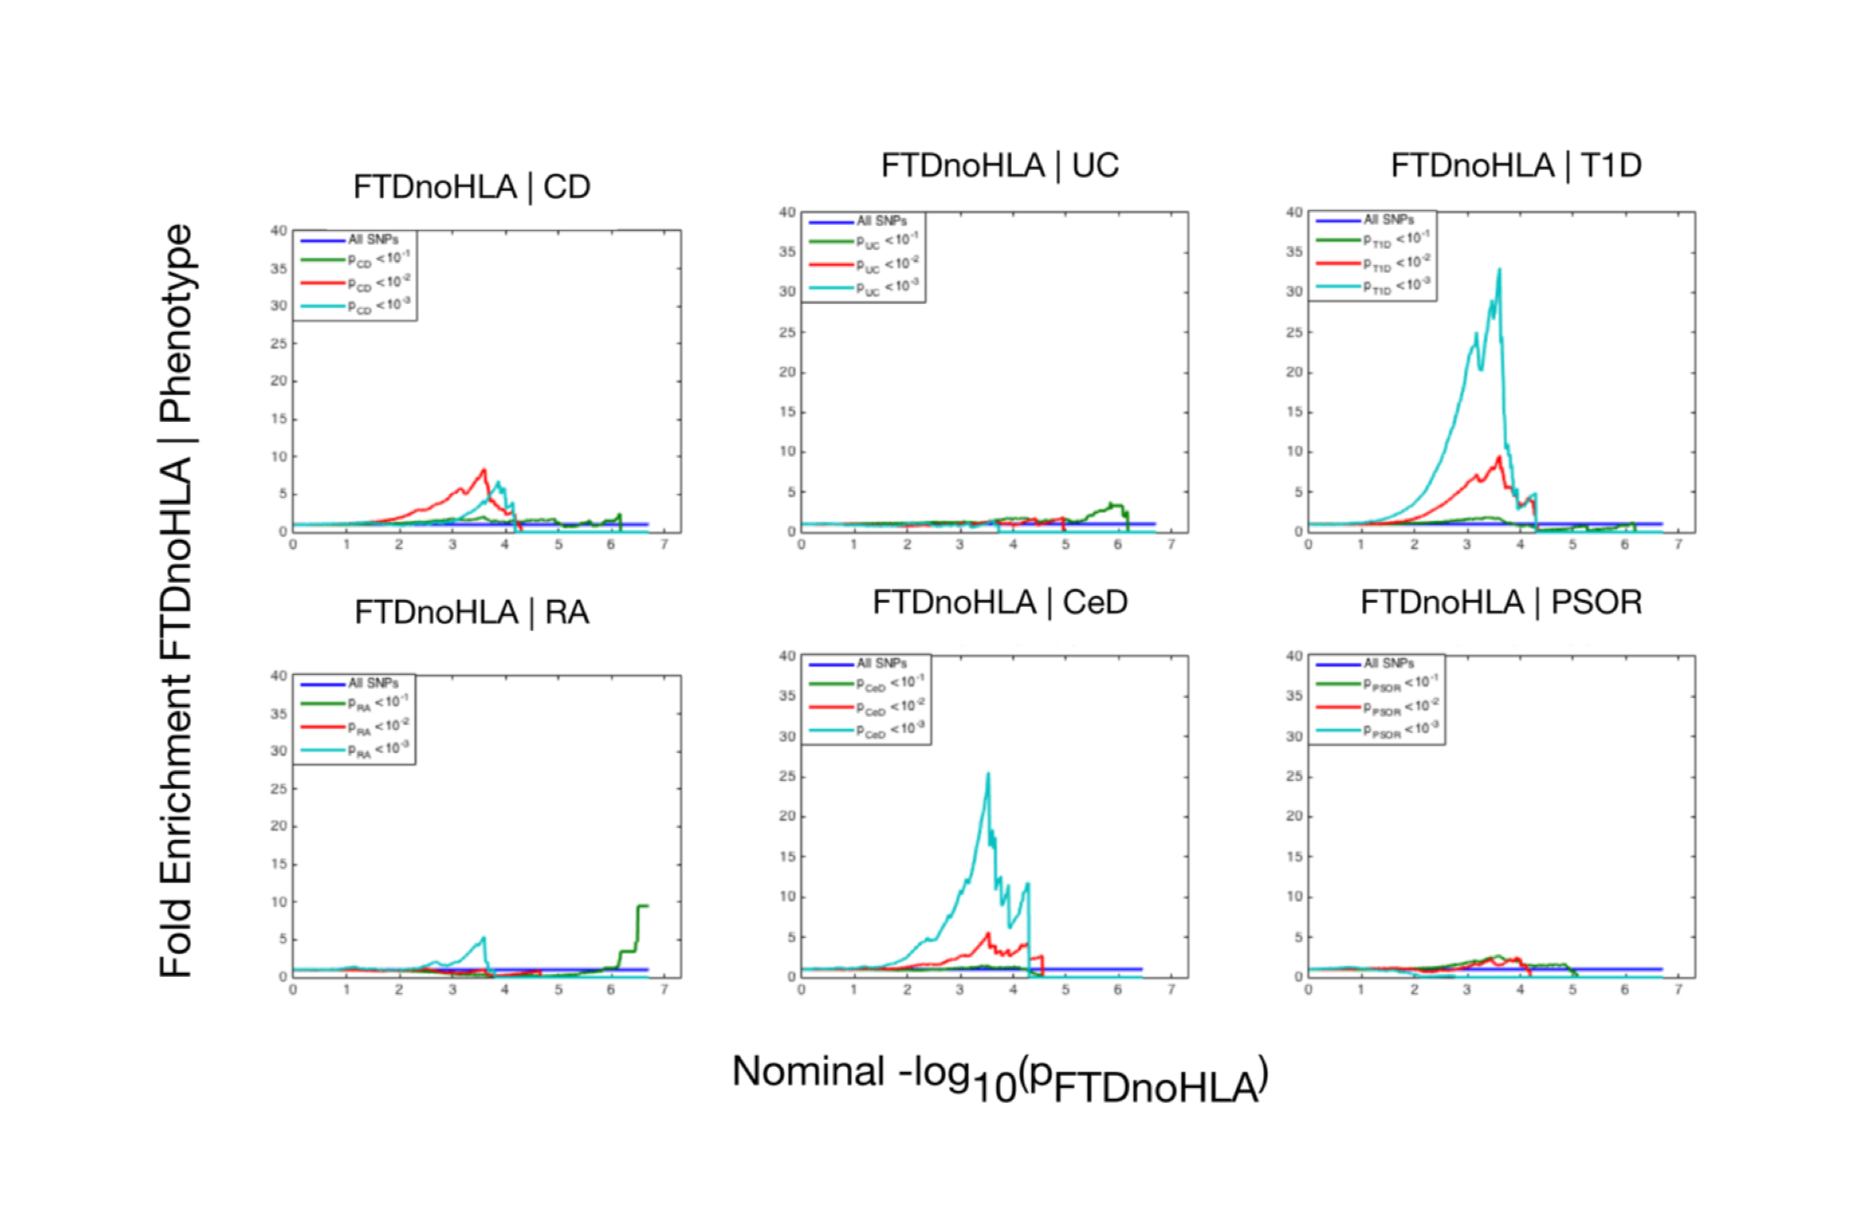 Fold enrichment plots of enrichment (after removing all regions in linkage disequilibrium with <i>HLA</i> on Chromosome 6) versus nominal −log<sub>10</sub>(<i>p</i>)-values (corrected for inflation) in frontotemporal dementia (FTD) below the standard genome-wide association study threshold of <i>p</i> &lt; 5 × 10<sup>−8</sup> as a function of significance of association with 6 immune-mediated diseases.